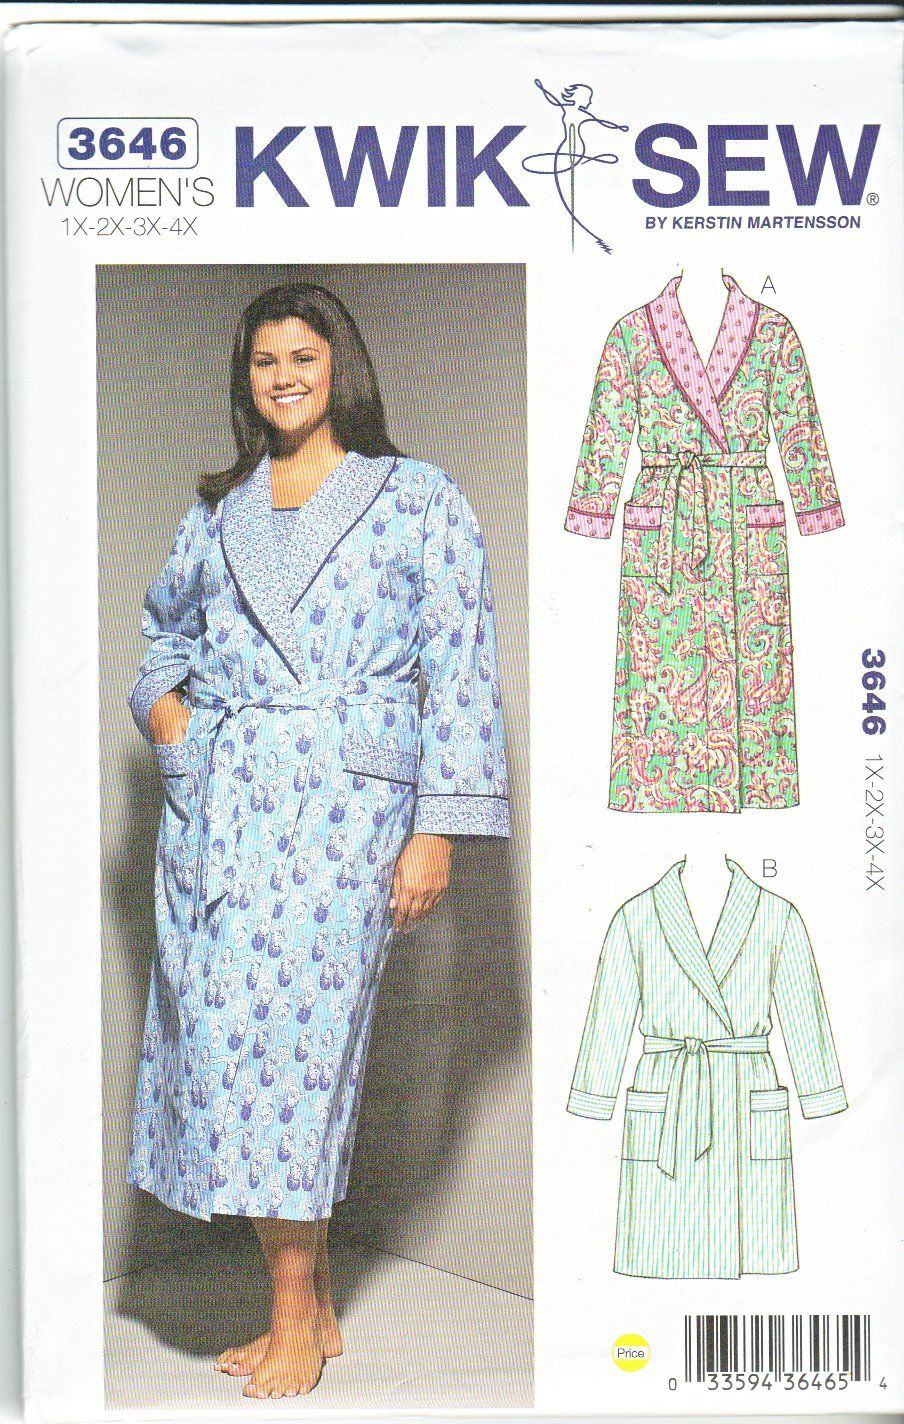 Kwik sew sewing pattern 3646 k3646 womens plus size 1x 4x 22w kwik sew sewing pattern 3646 womens plus size front wrap bathrobe robe jeuxipadfo Gallery